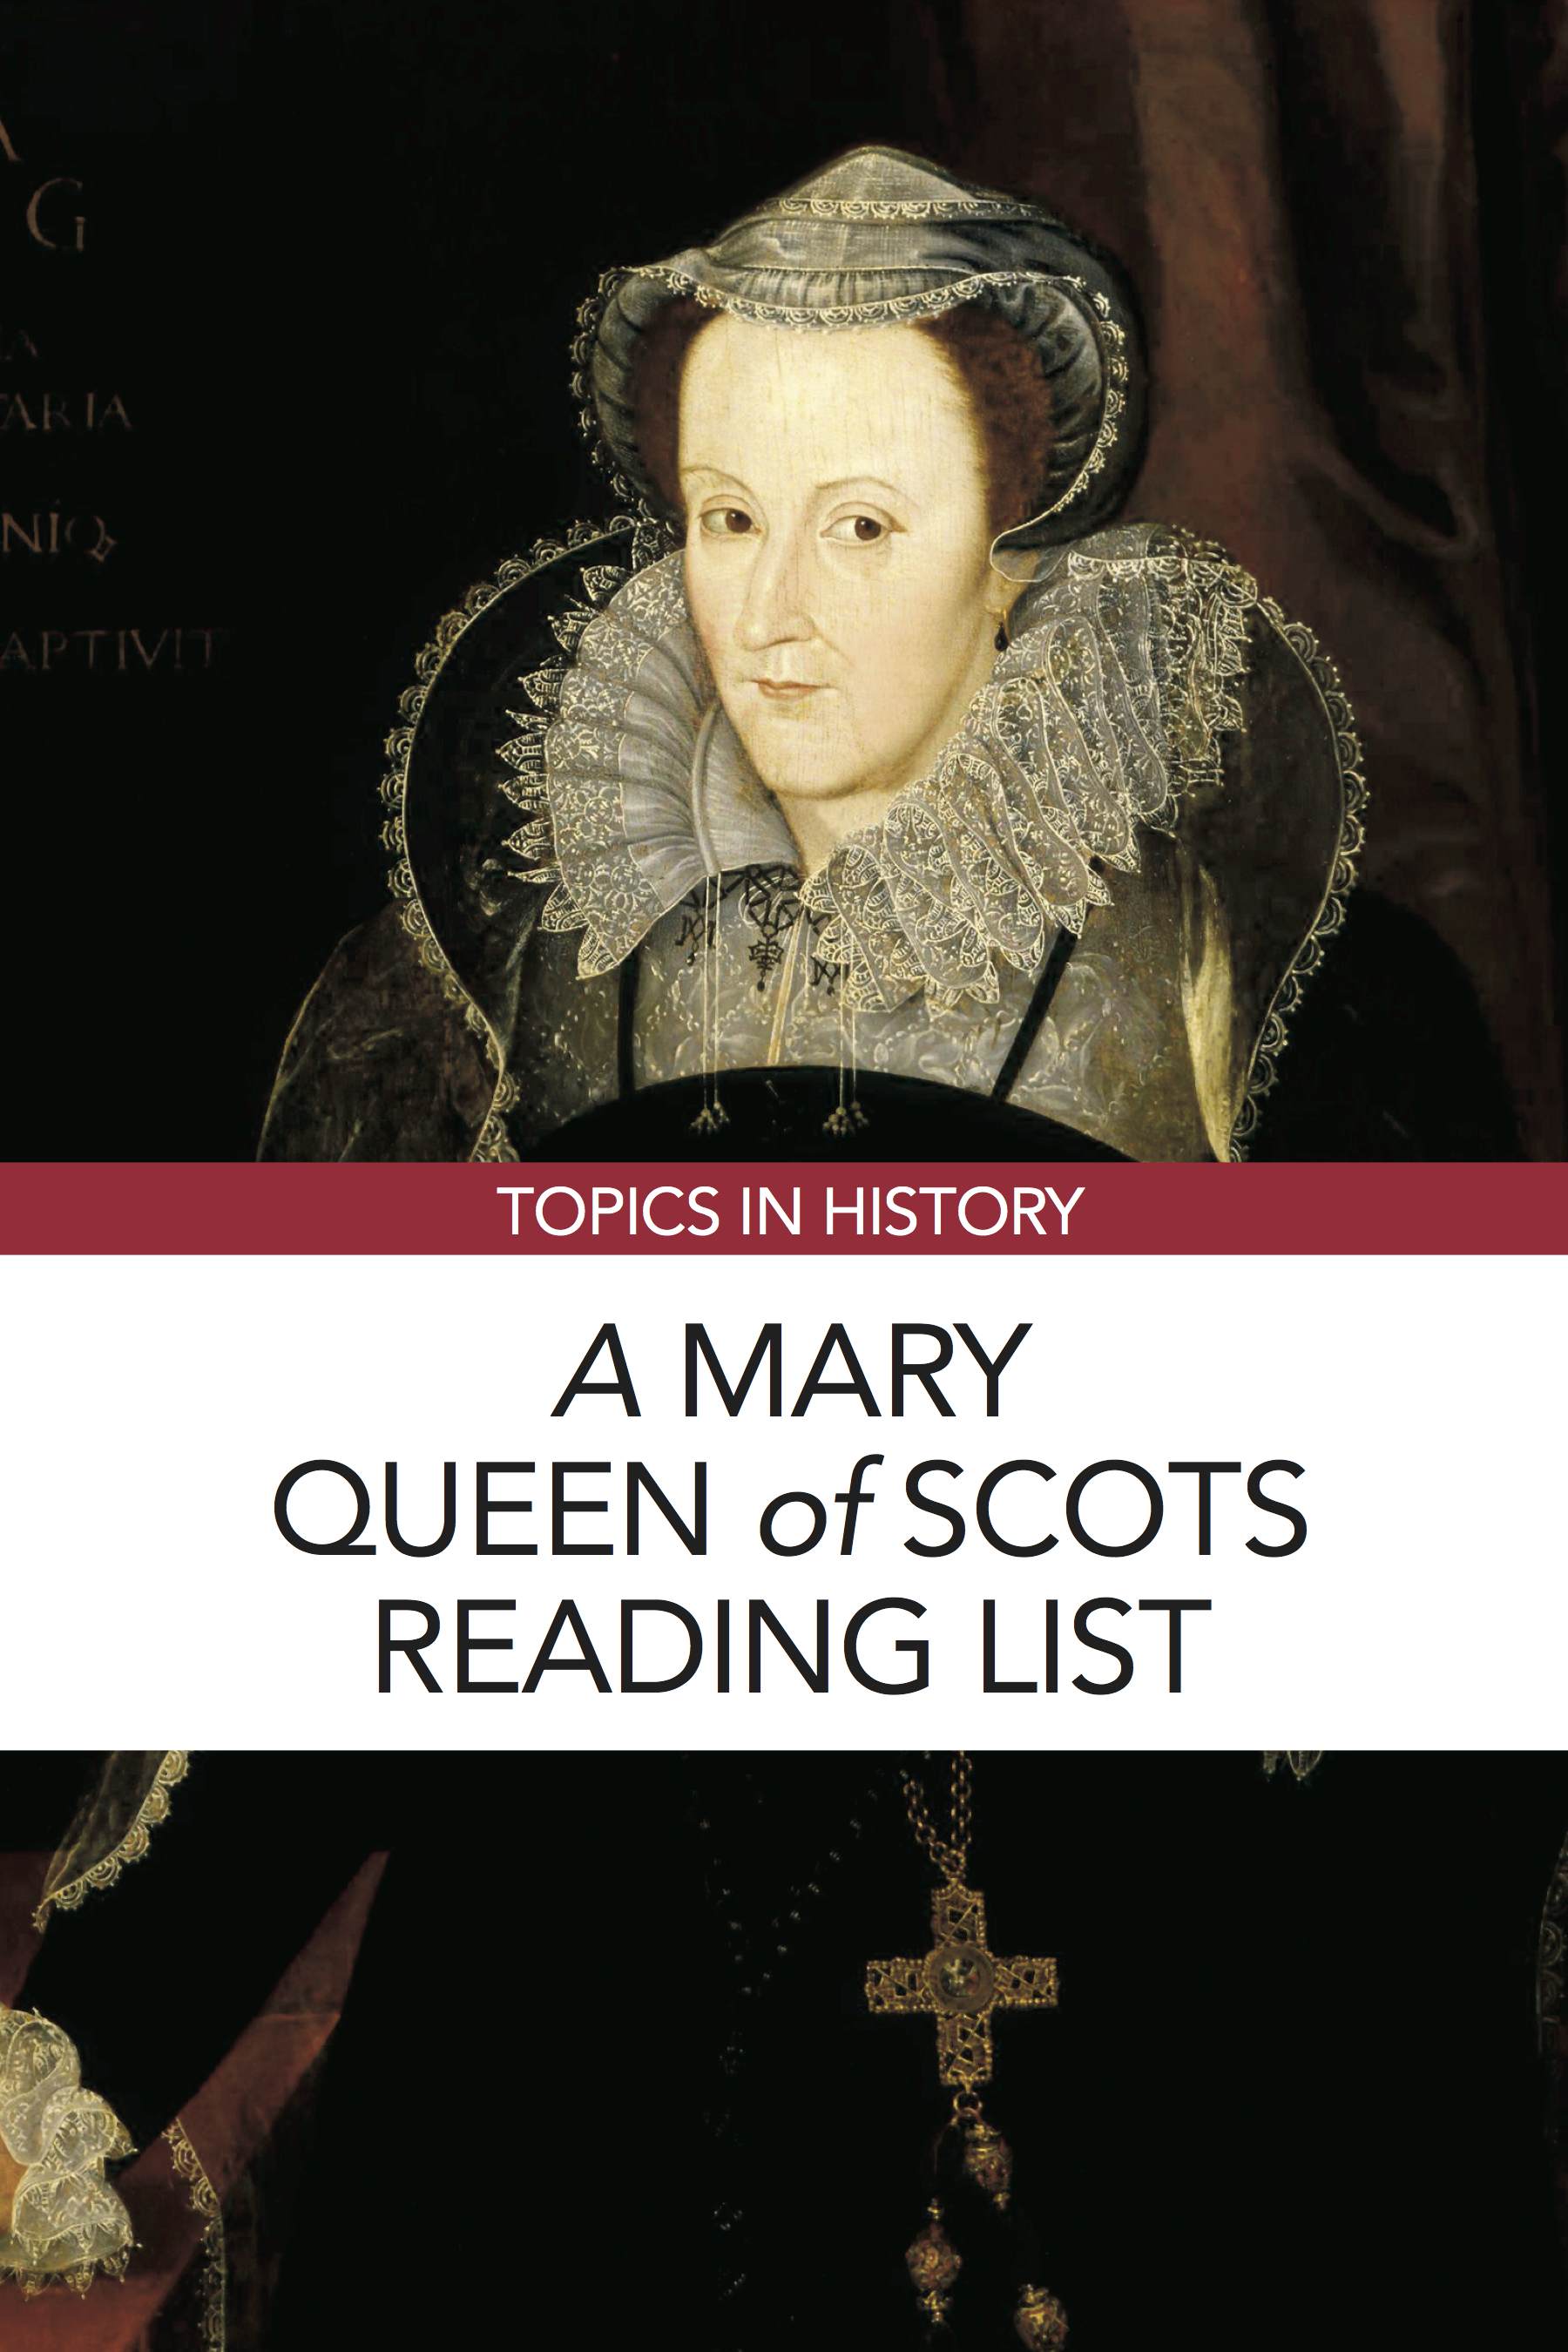 Great reading list for studying Mary Stuart, Mary Queen of Scots